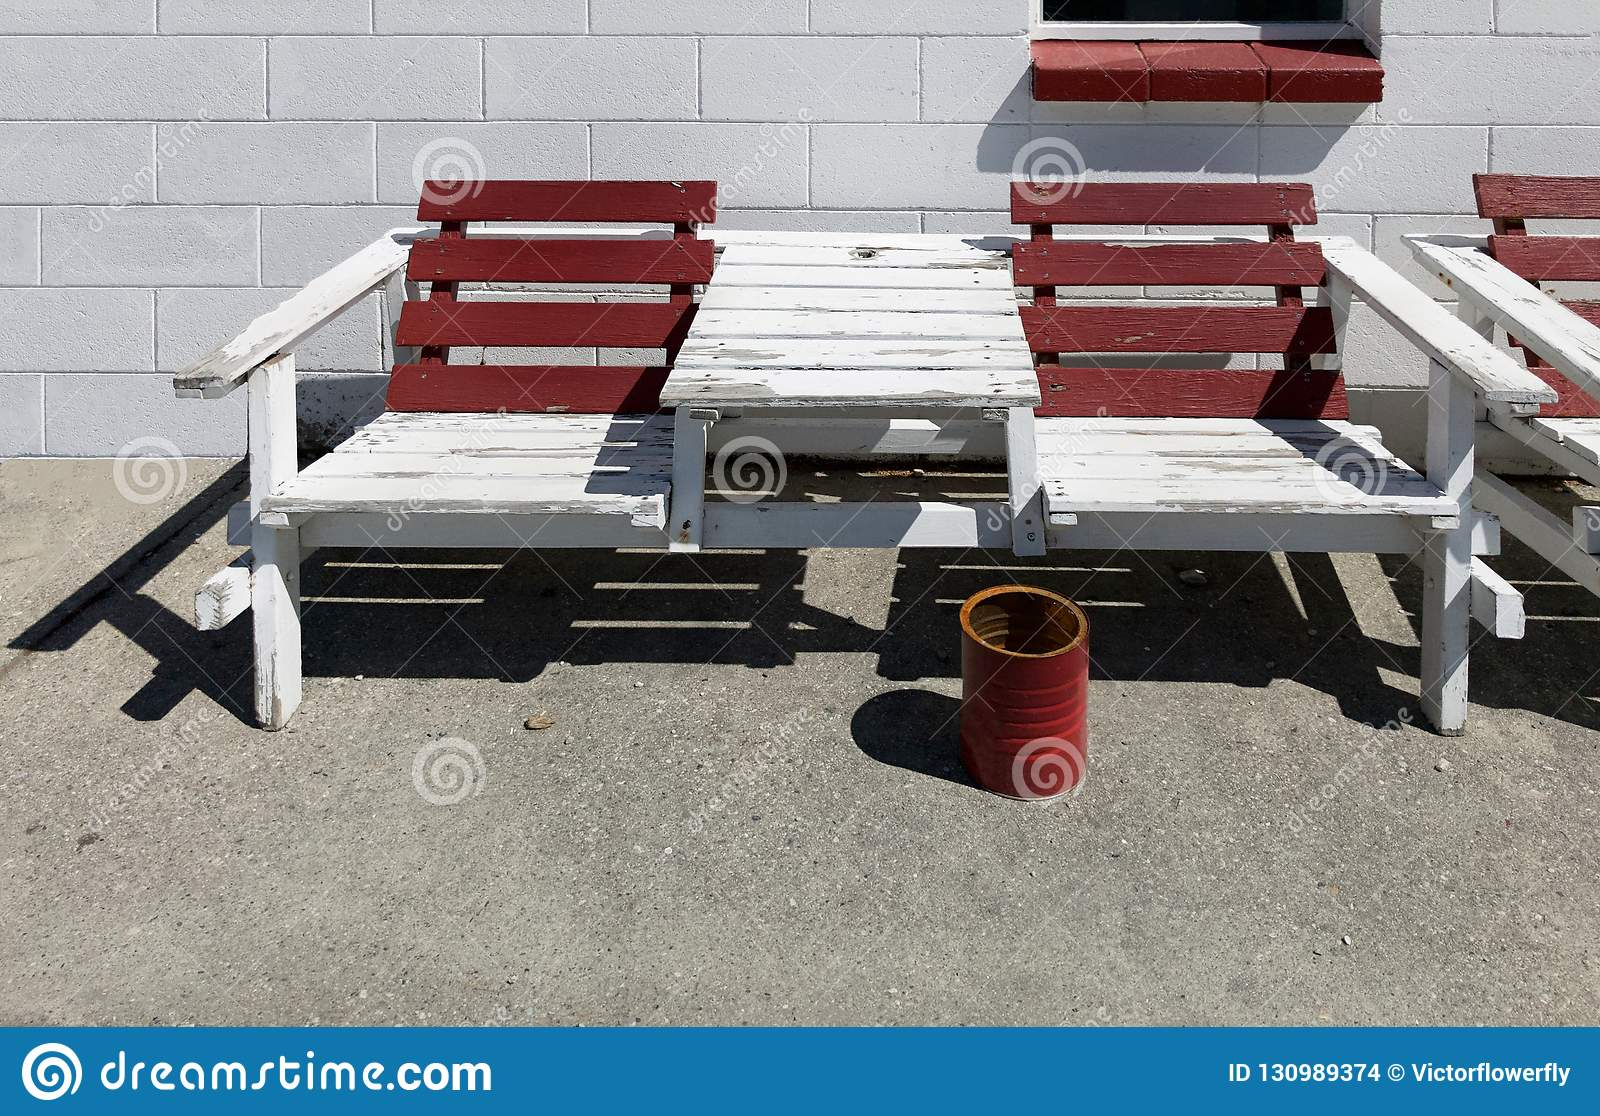 Maroon and white color painted wooden outdoor summer bench chair against white brick concrete block wall background and red bucket